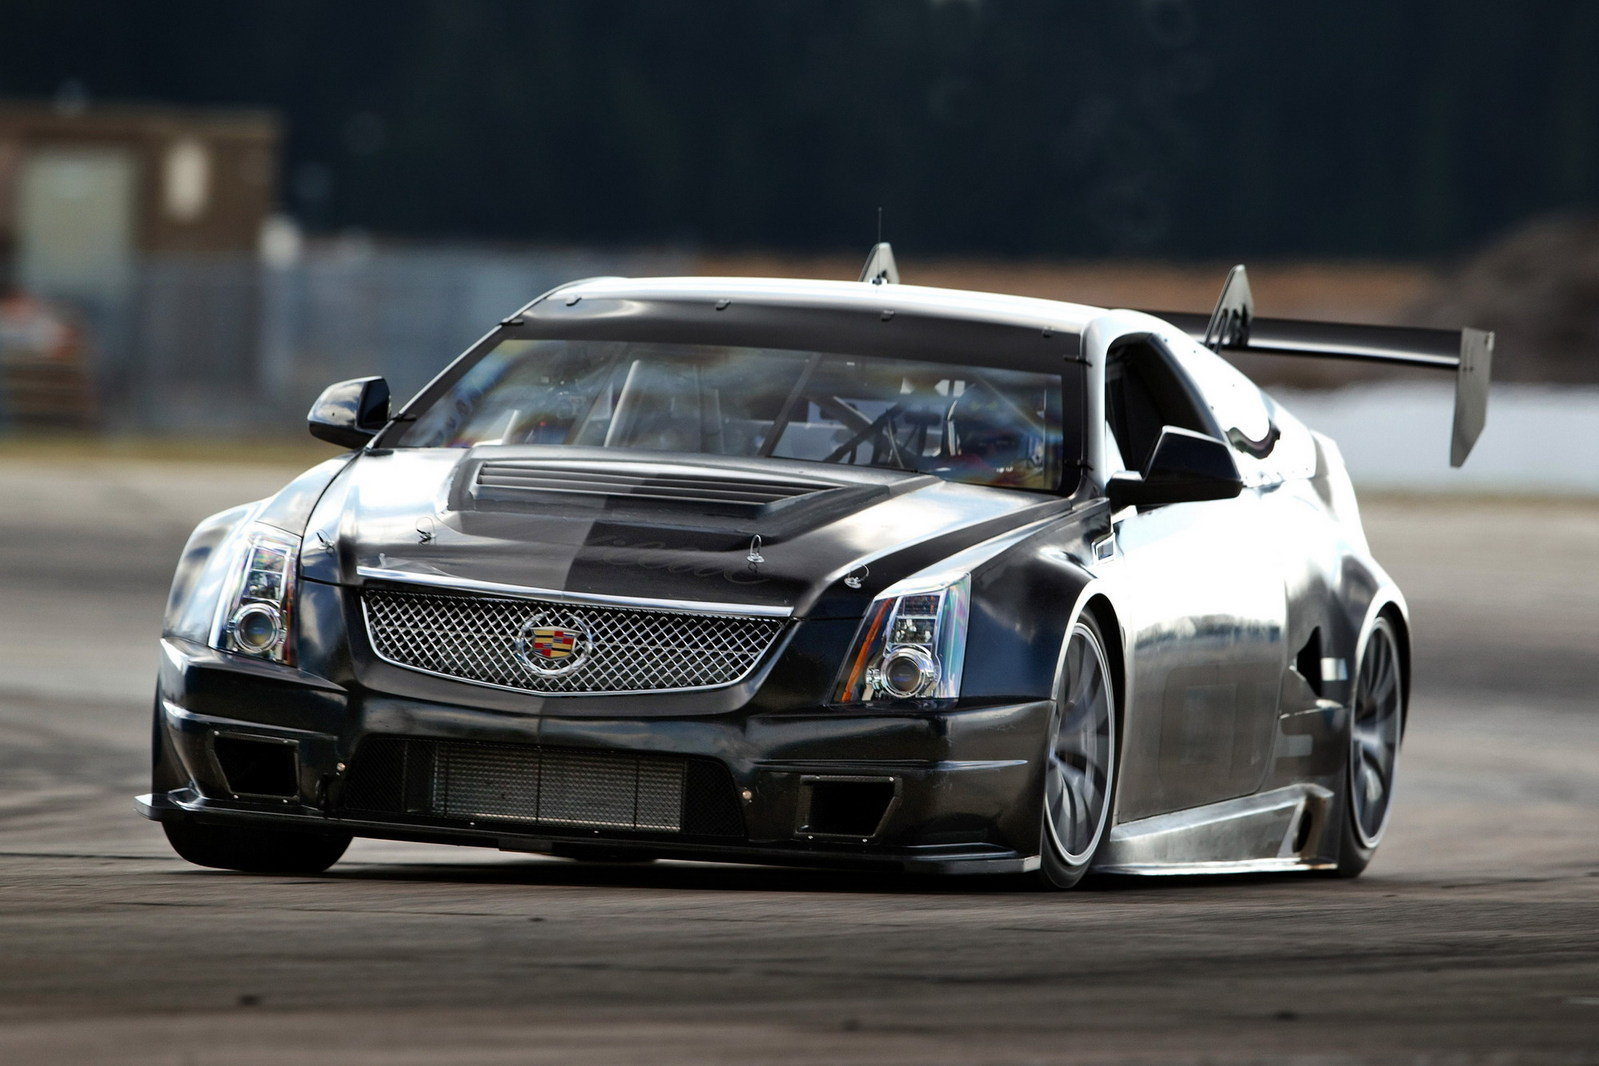 2011 cadillac cts v coupe race car review top speed. Black Bedroom Furniture Sets. Home Design Ideas